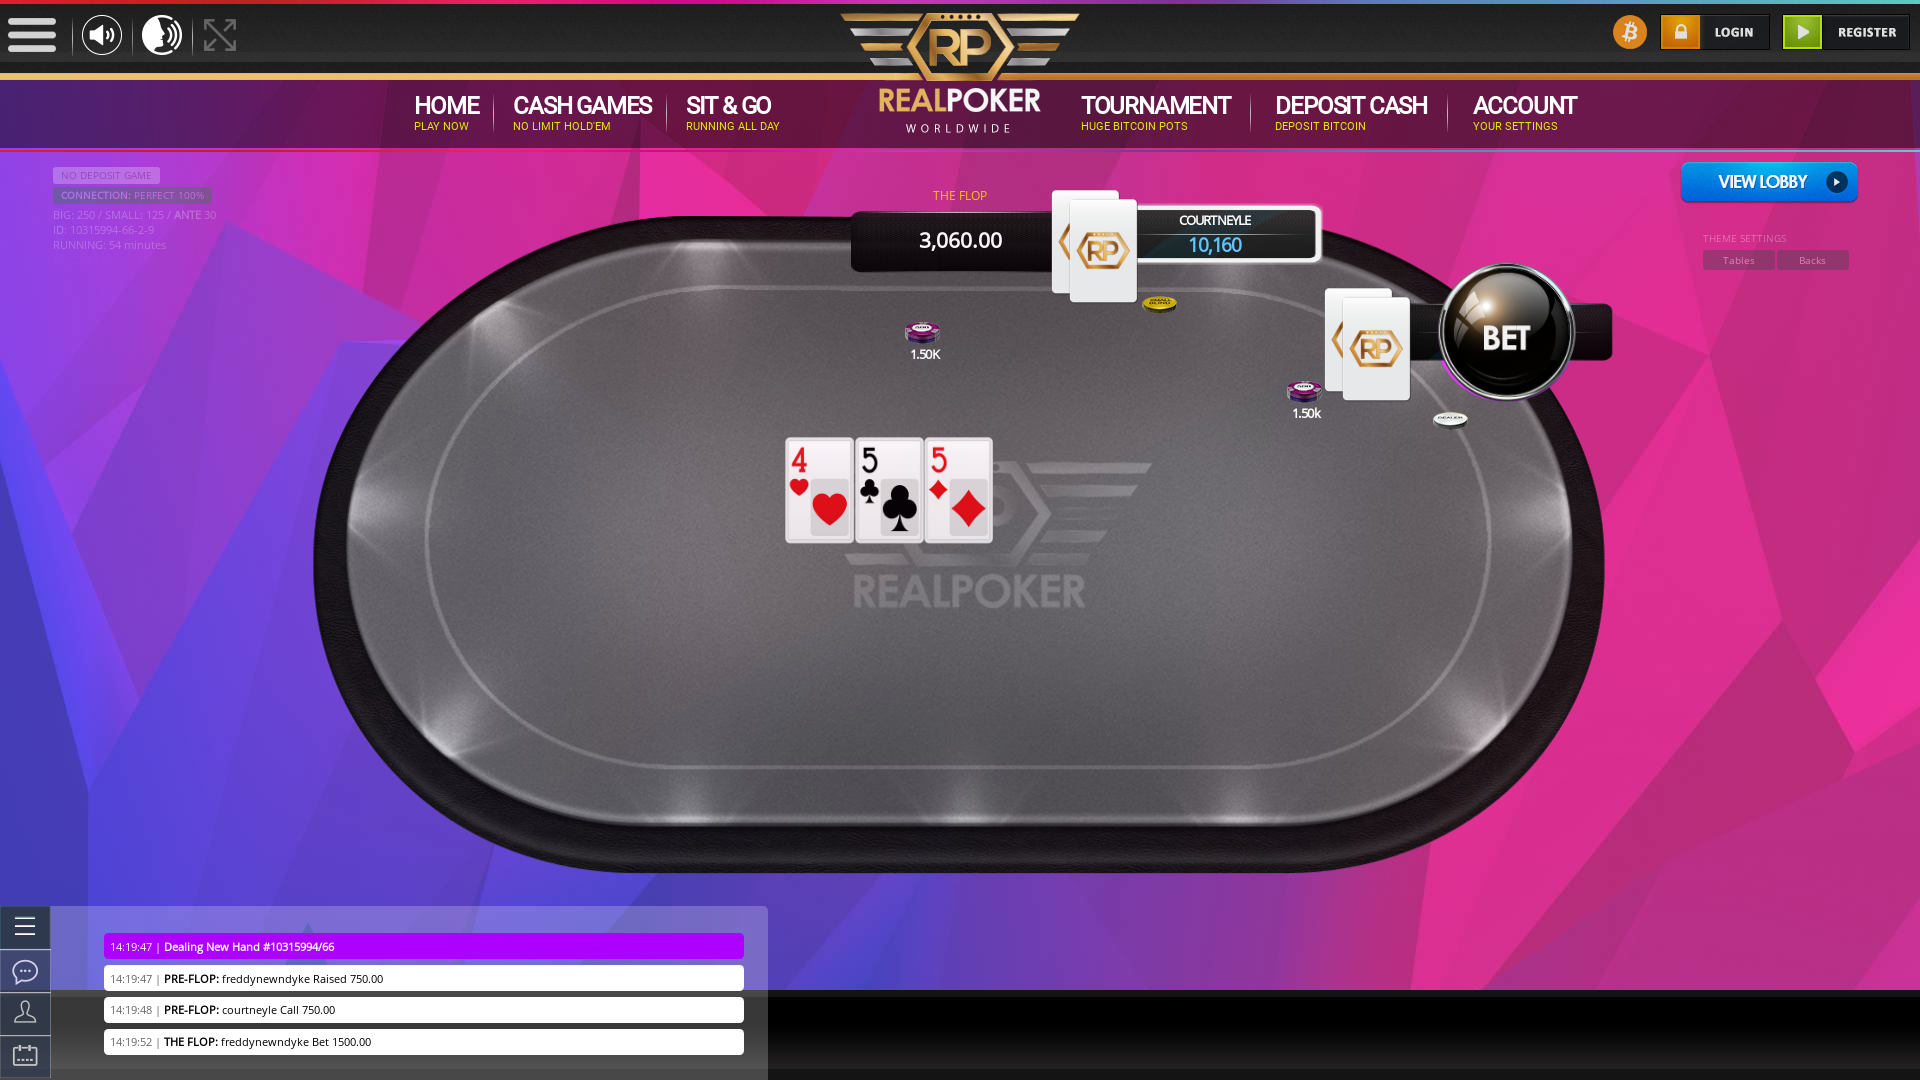 The 66th hand dealt between freddynewndyke, courtneyle,  on poker bitcoin